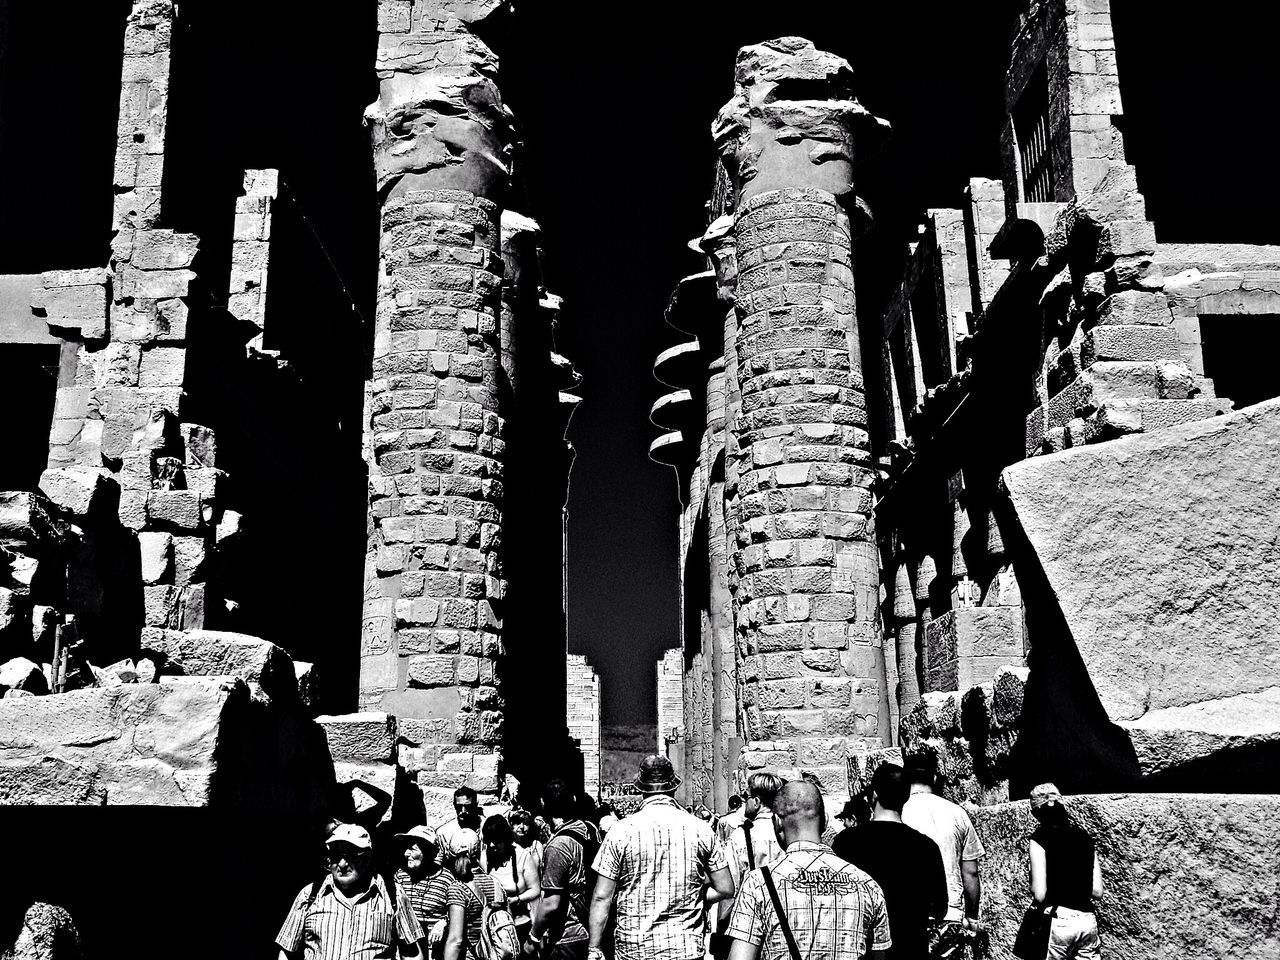 real people, large group of people, history, men, old ruin, built structure, ancient, leisure activity, women, architecture, religion, travel destinations, spirituality, tourism, ancient civilization, outdoors, place of worship, lifestyles, travel, day, building exterior, architectural column, sky, adult, people